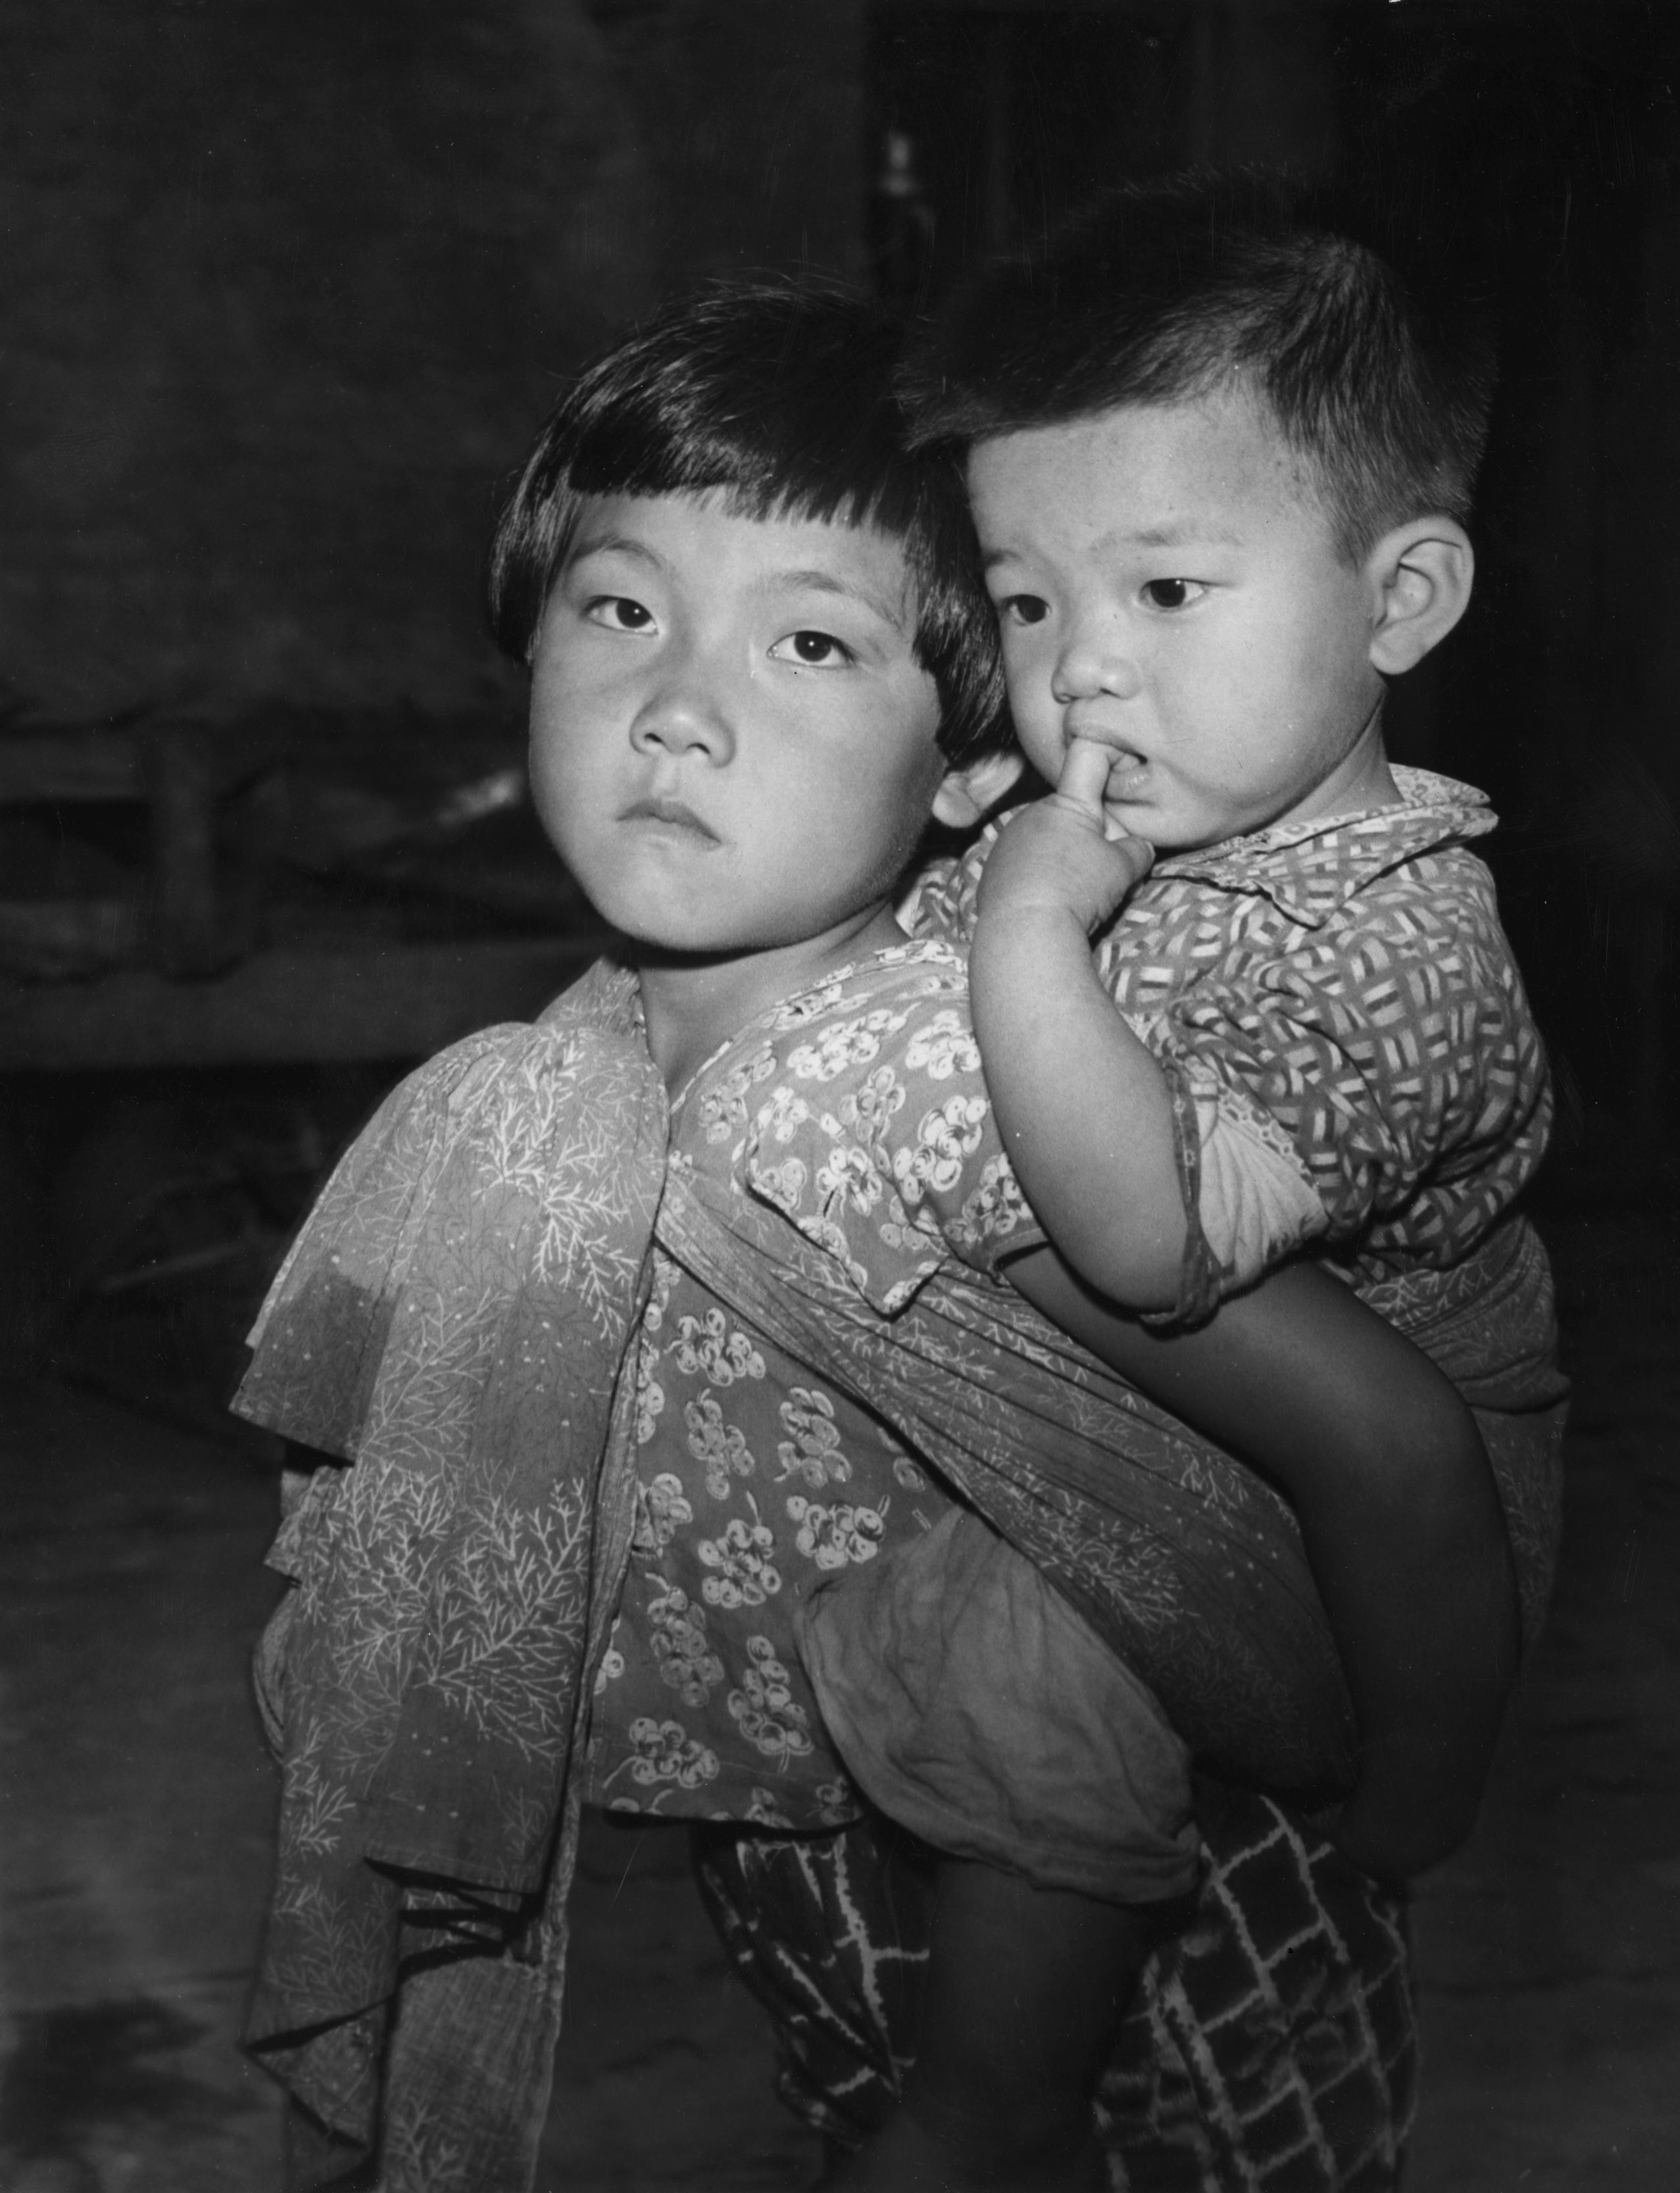 1959: Two Taiwanese children, orphaned when the Chinese Communist army bombed their home in the Nationalist stronghold of the Quemoy islands. Made homeless by the shelling, 6,000 of Quemoy's inhabitants were evacuated to Formosa or Taiwan. (Photo by Keystone Features/Getty Images)